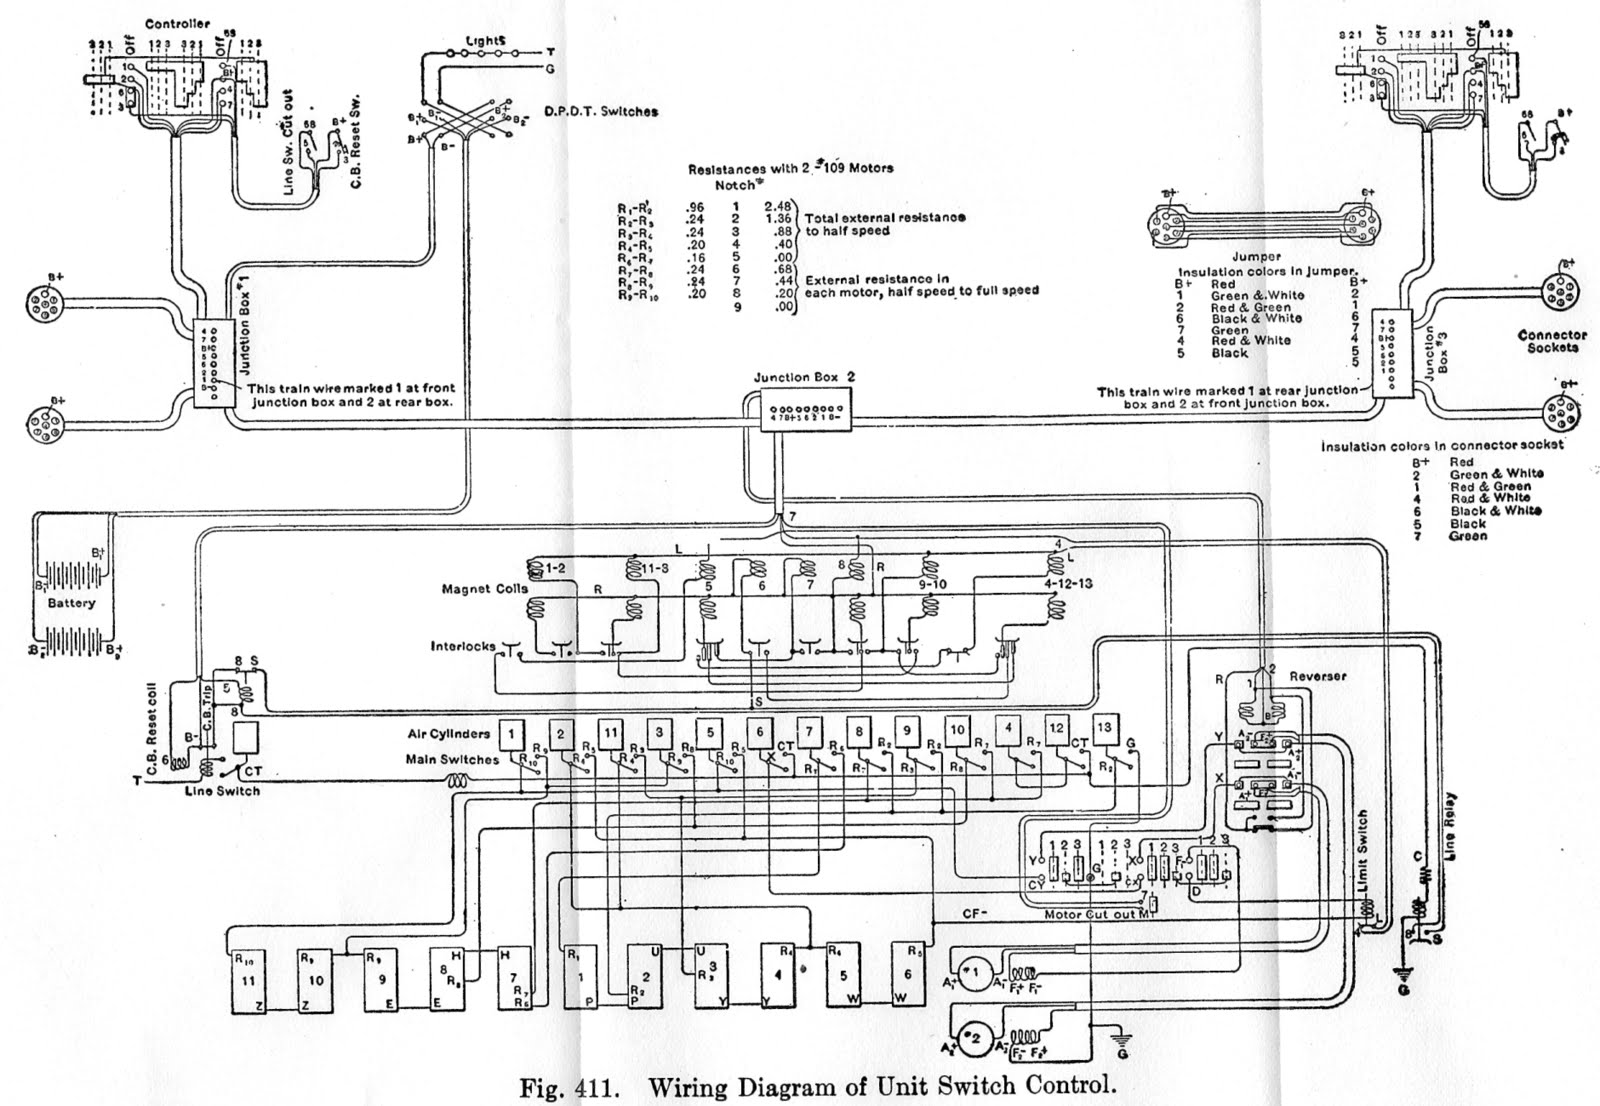 Hicks Car Works Control Circuit Diagrams Wiring Motor Repalcement Parts And Diagram